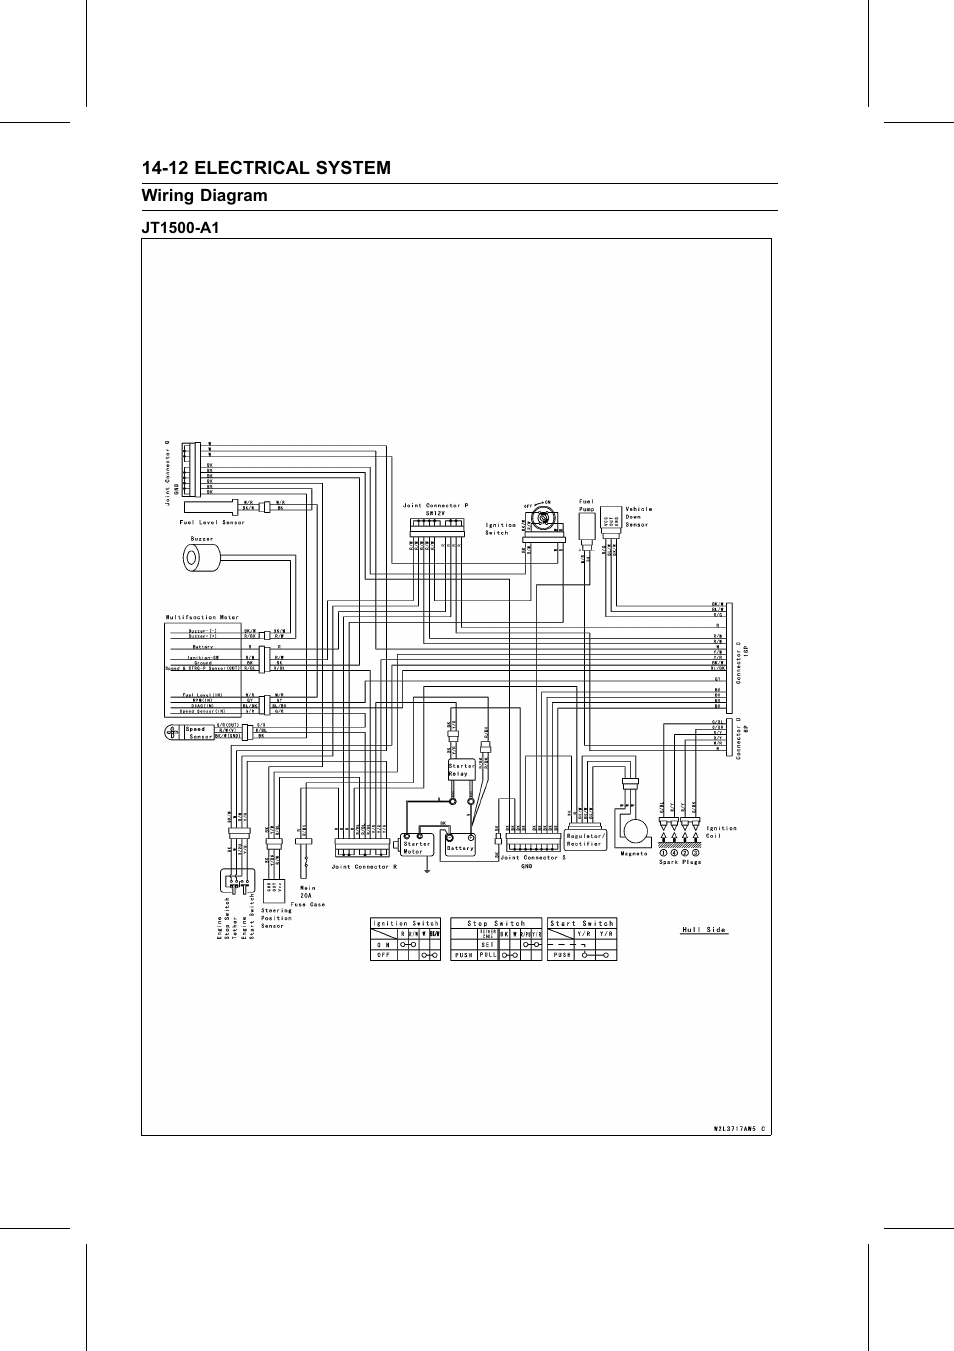 DIAGRAM] Leviton T5225 Wiring Diagram FULL Version HD Quality Wiring Diagram  - TELESCOPEDIAGRAMS.CARAVANINGSAINTPAUL.FRDiagram Database